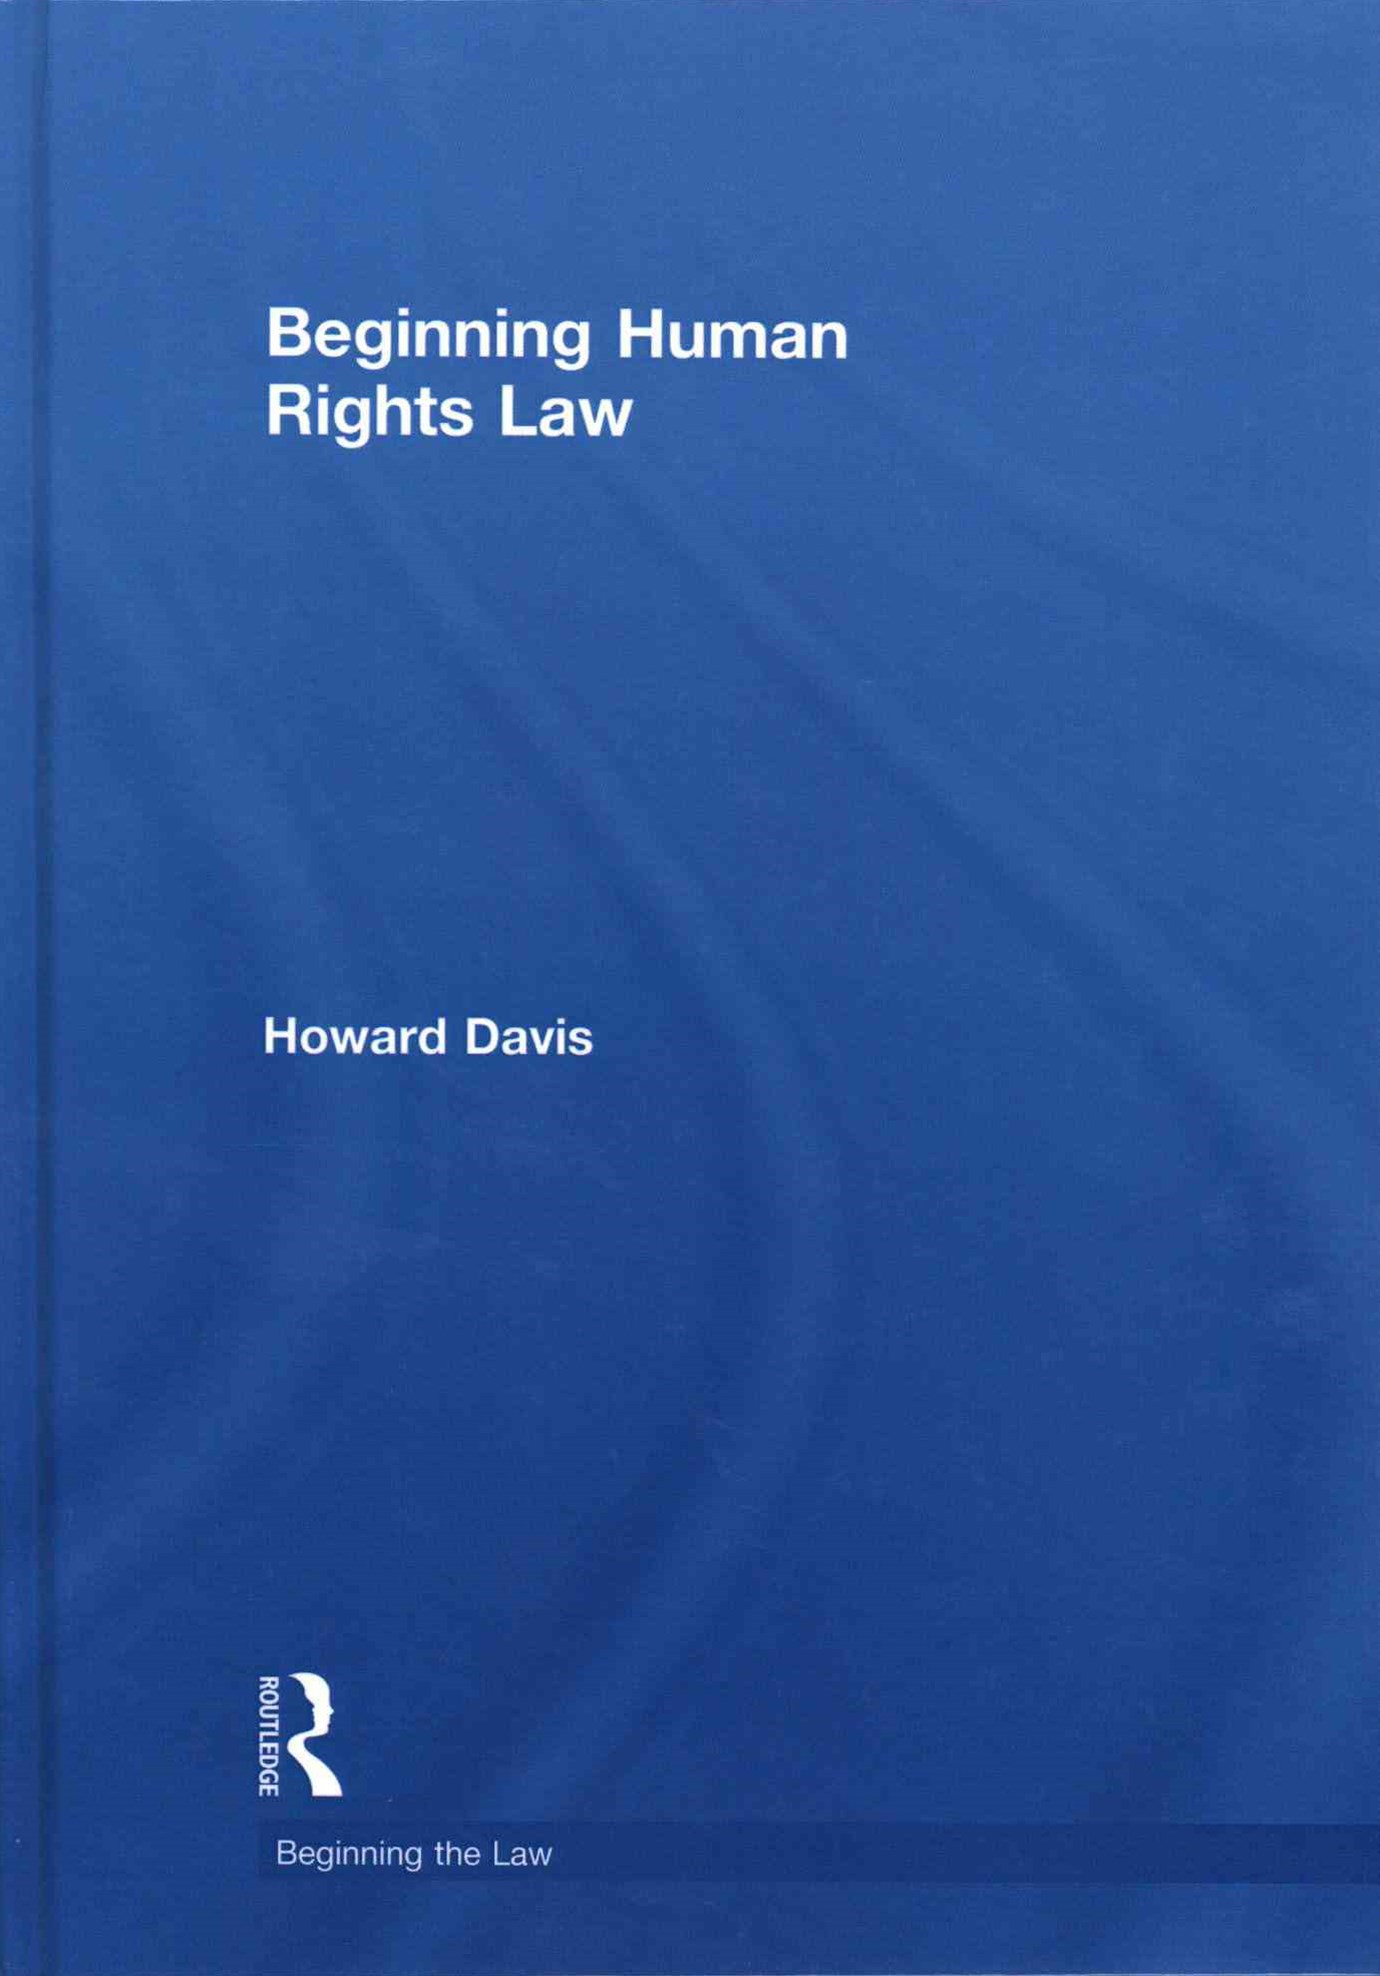 Beginning Human Rights Law